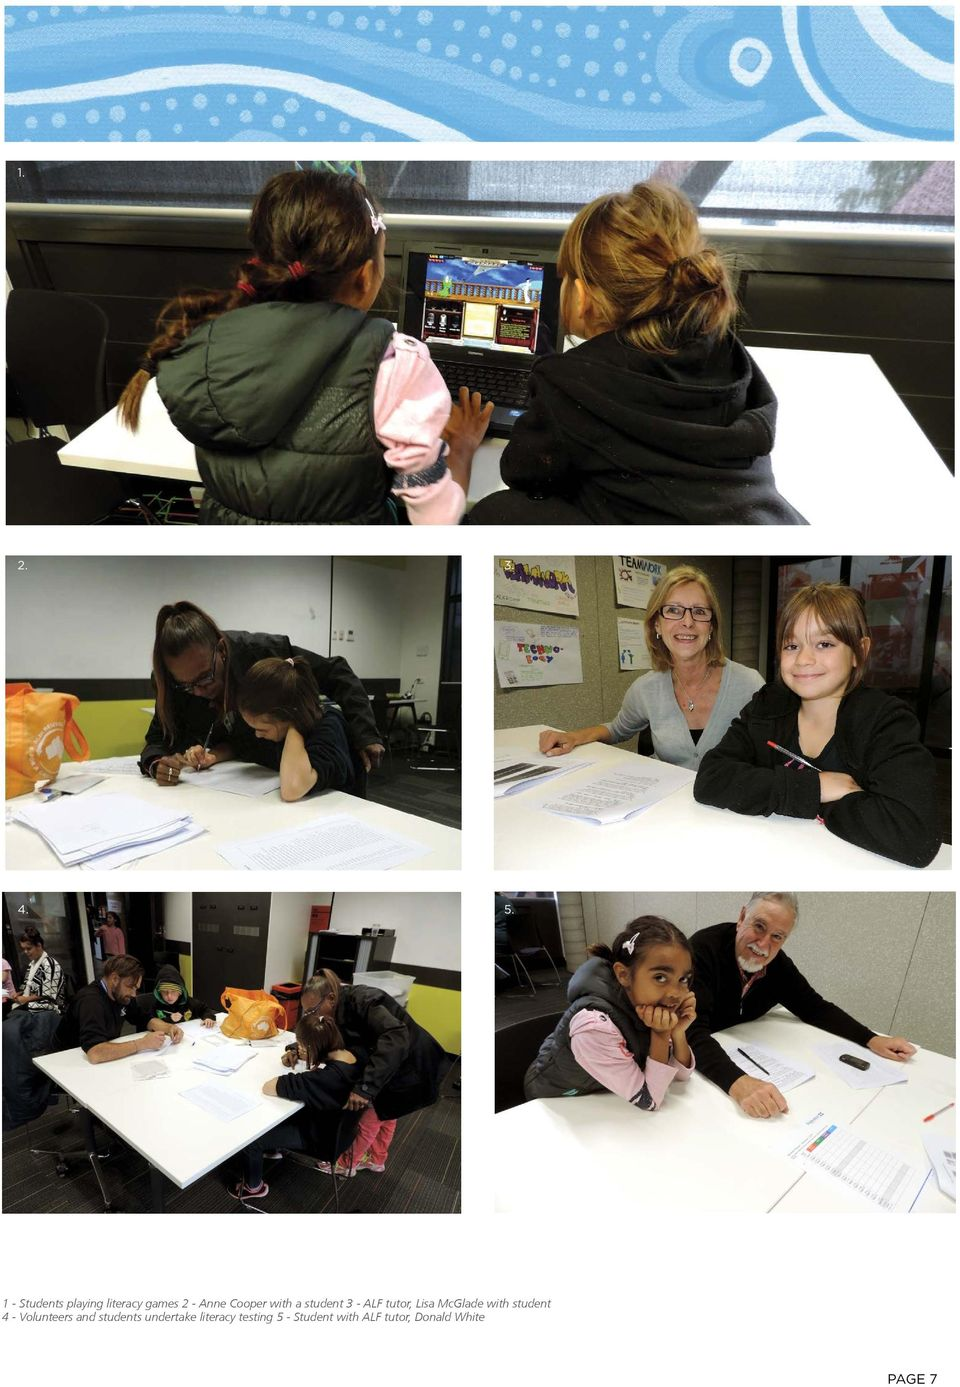 a student 3 - ALF tutor, Lisa McGlade with student 4 -